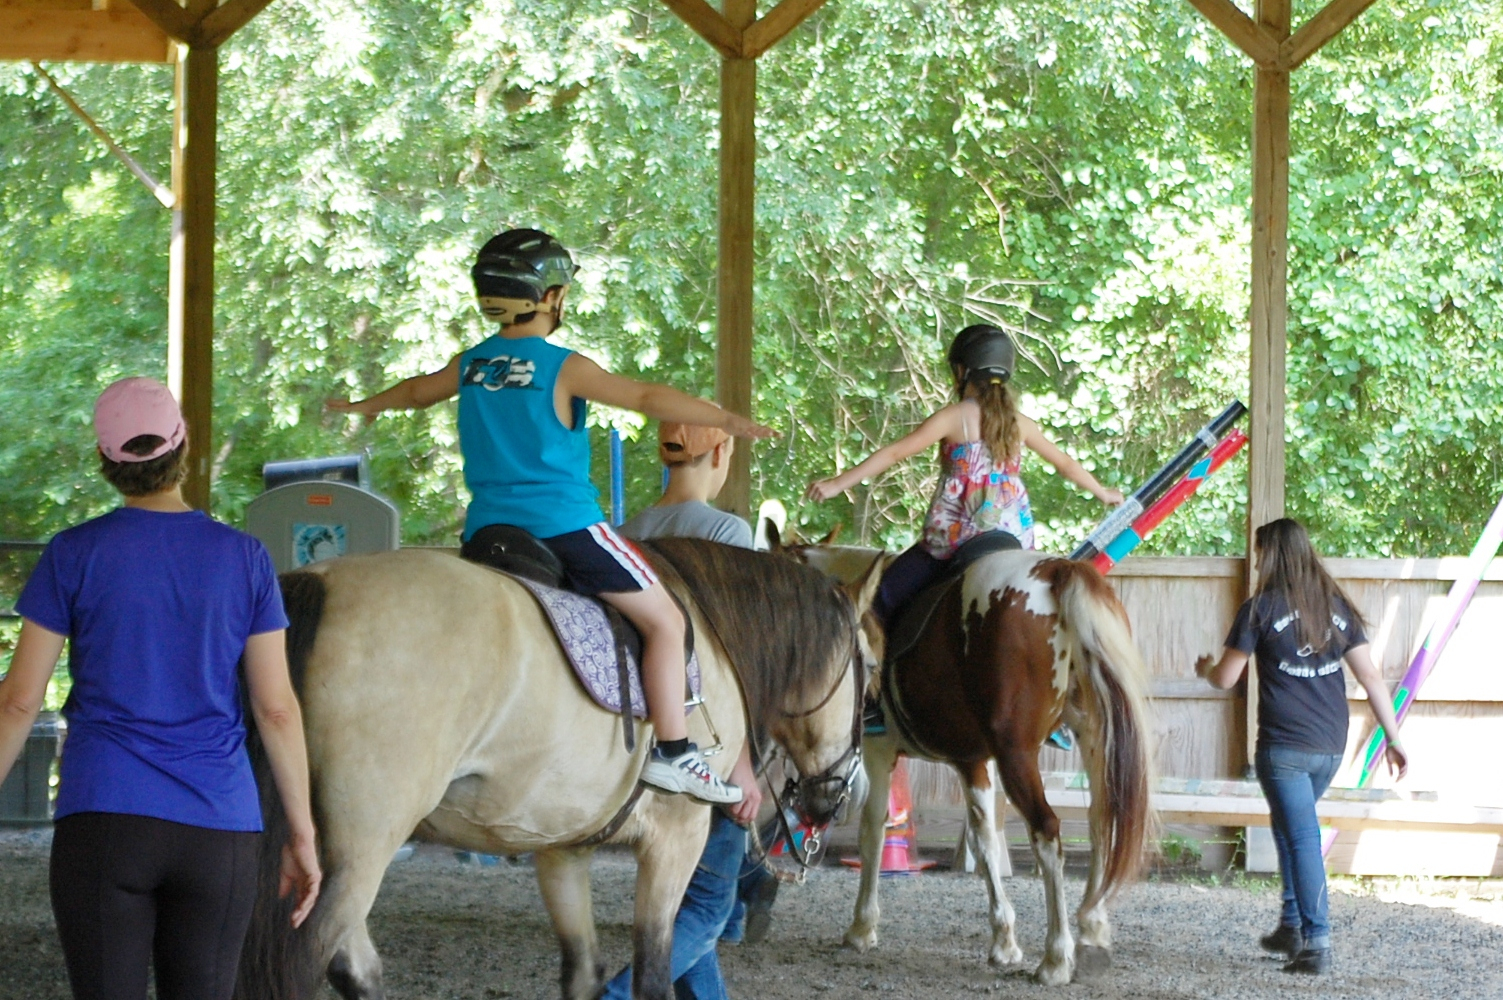 All Riders Up in Garnet Valley Offers Horseback Riding as Therapy for Those Suffering Trauma